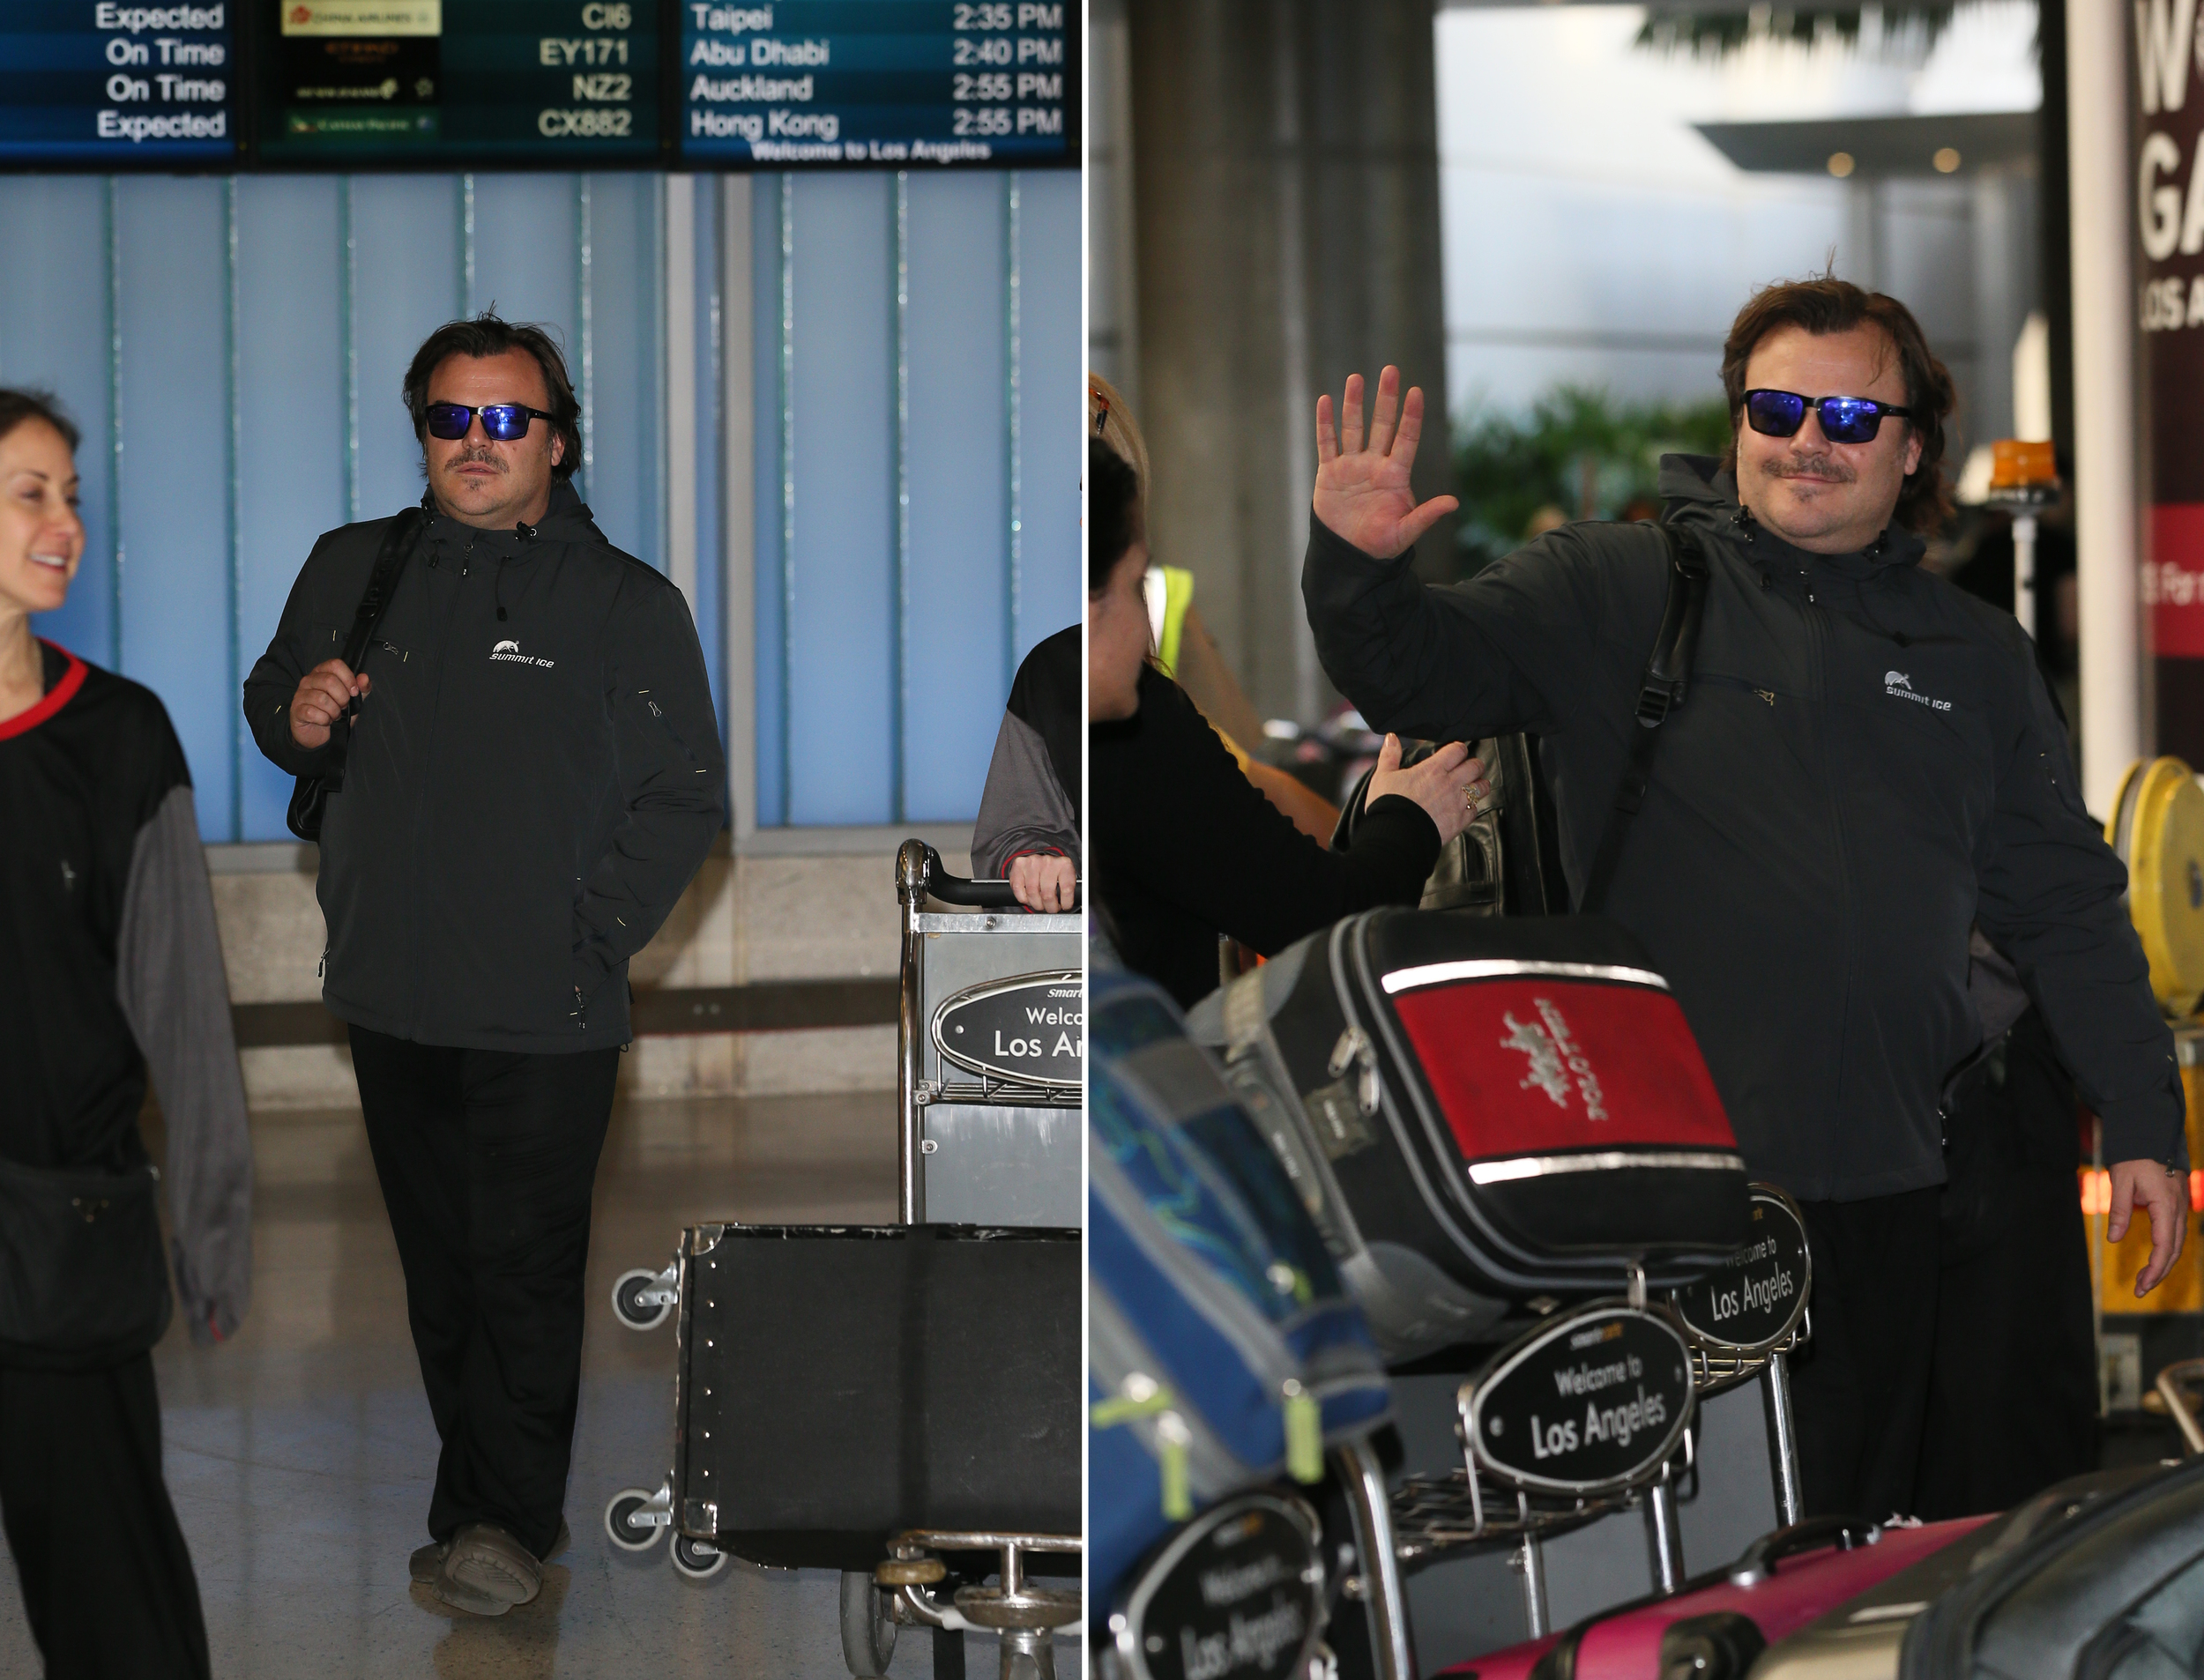 Jack Black  arriving at LAX in style with his Summit Ice softshell.